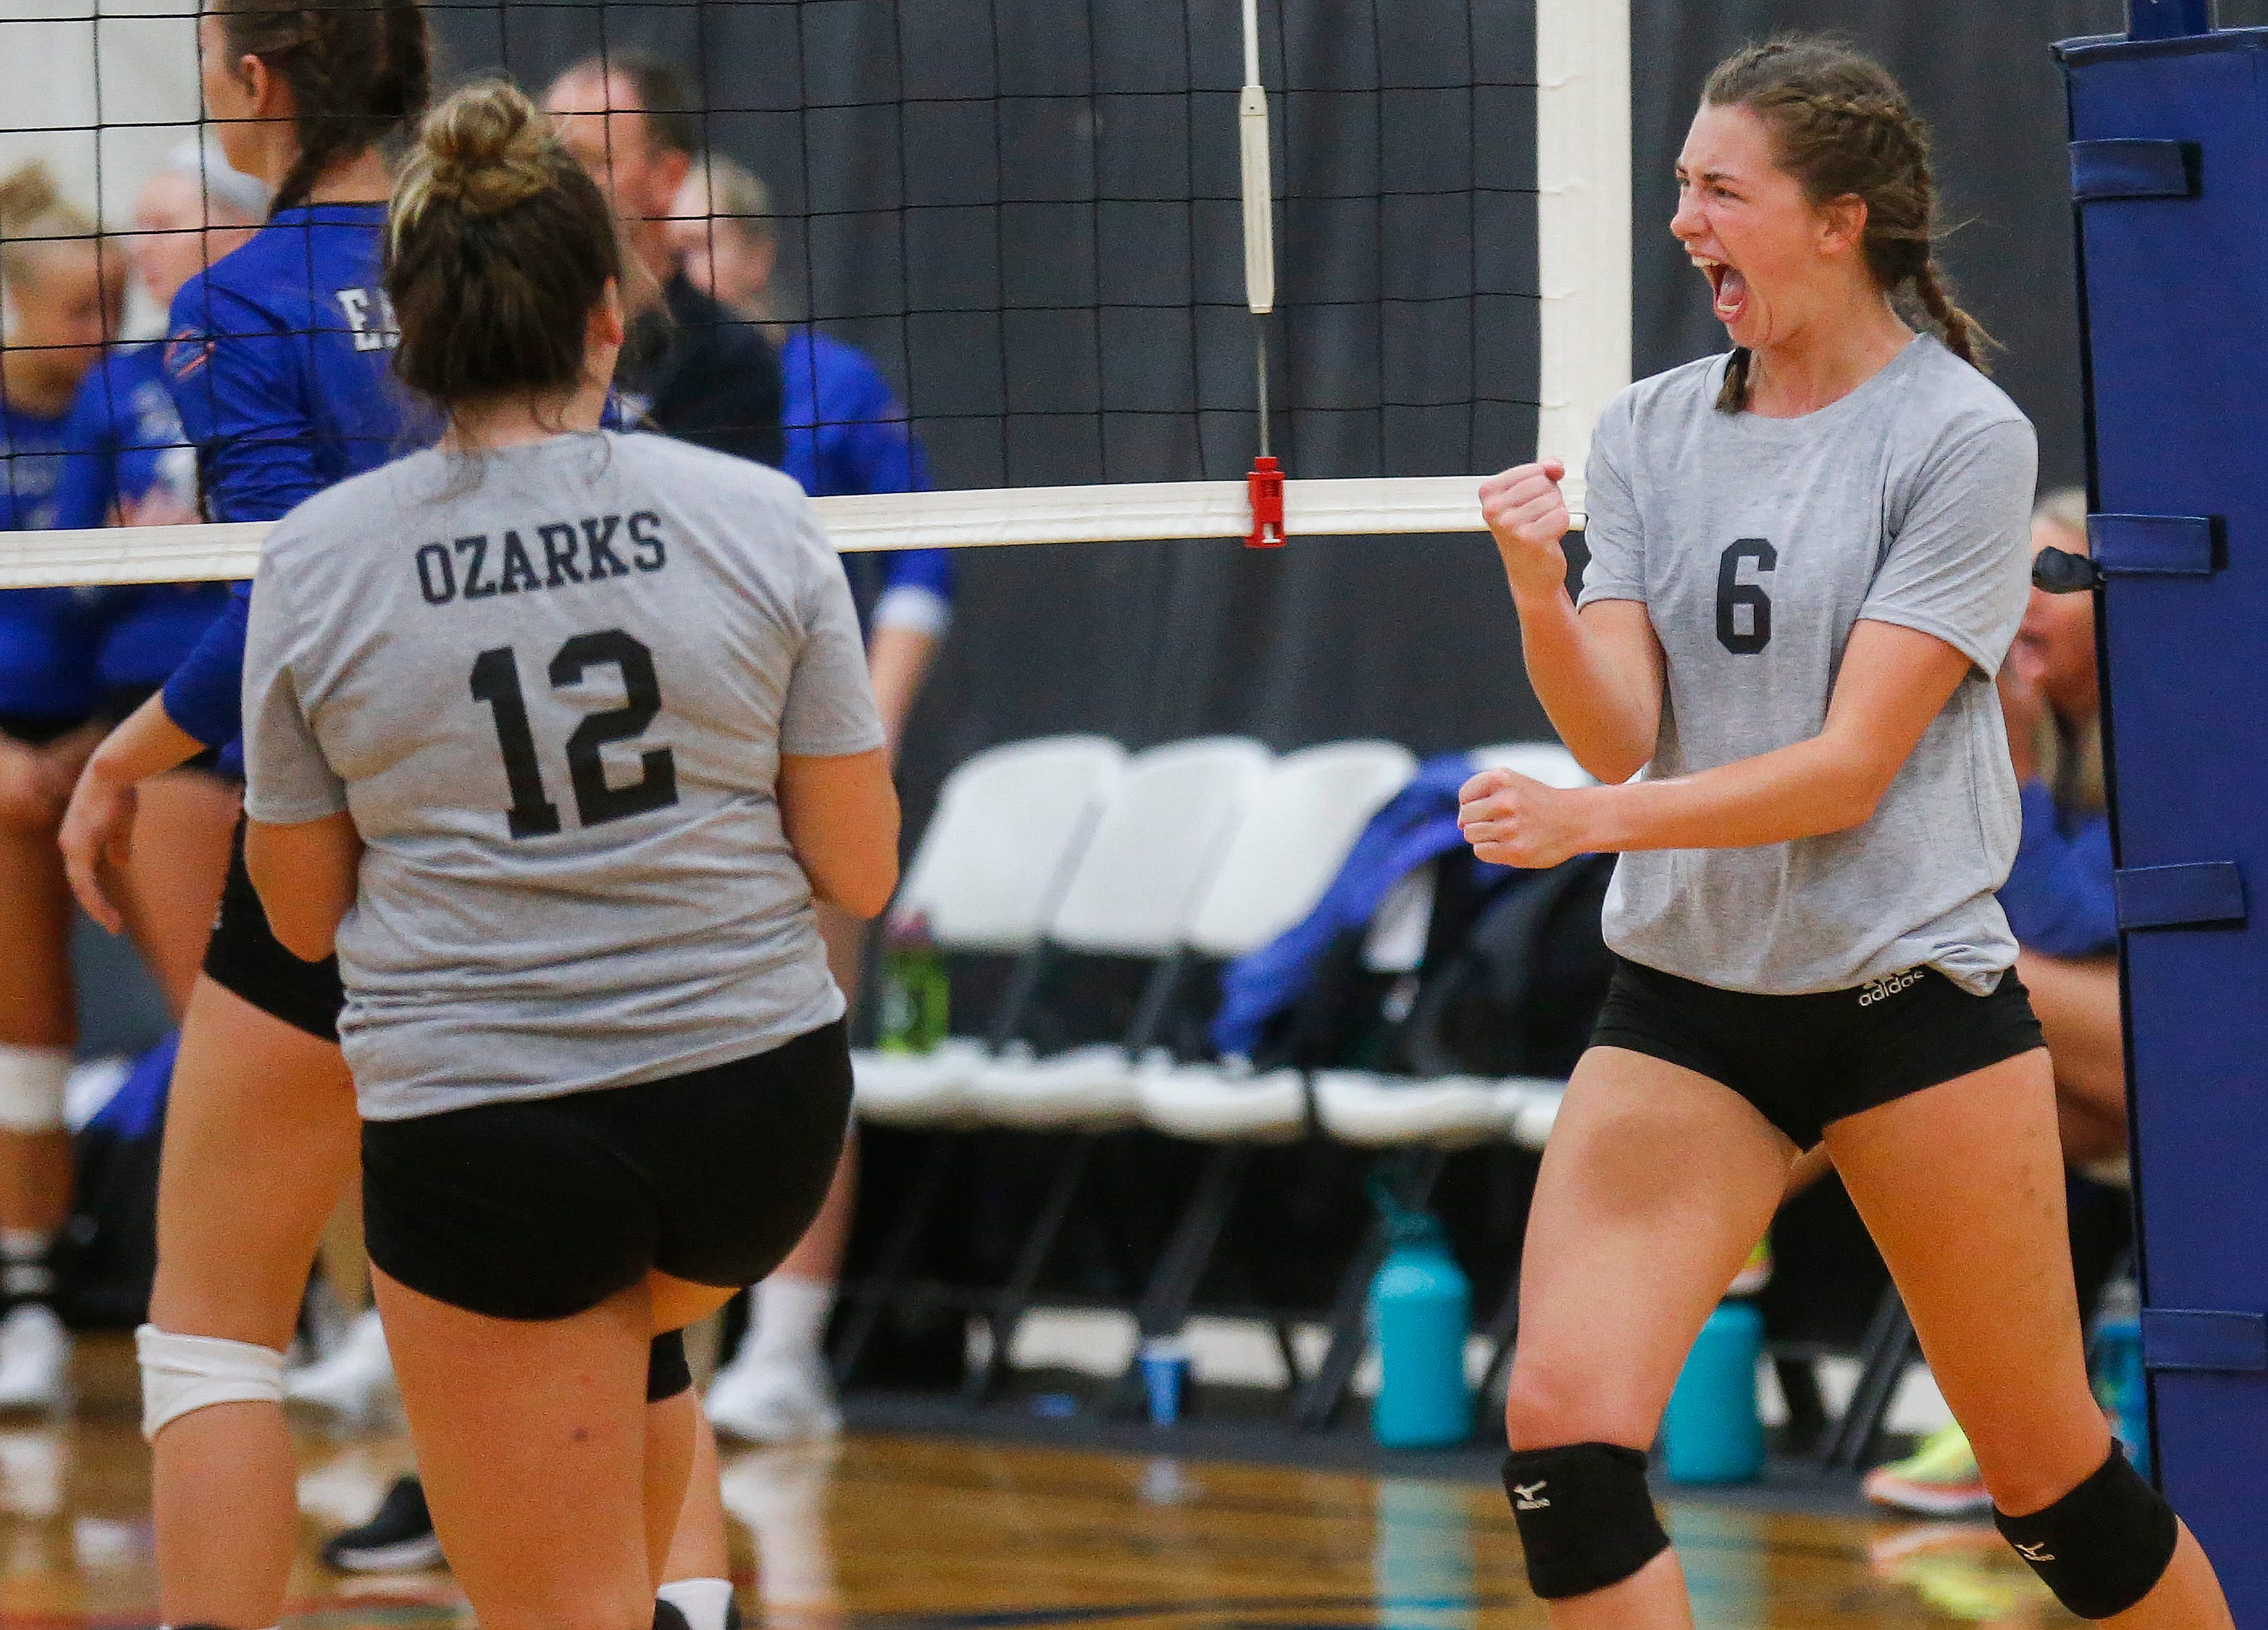 Kayli Grant (6), of the College of the Ozarks Bobcats, celebrates winning a point against the Williams Baptist Eagles during the 2018 Evangel Classic at The Courts in Springfield, MO., on Saturday, Sep. 8, 2018.